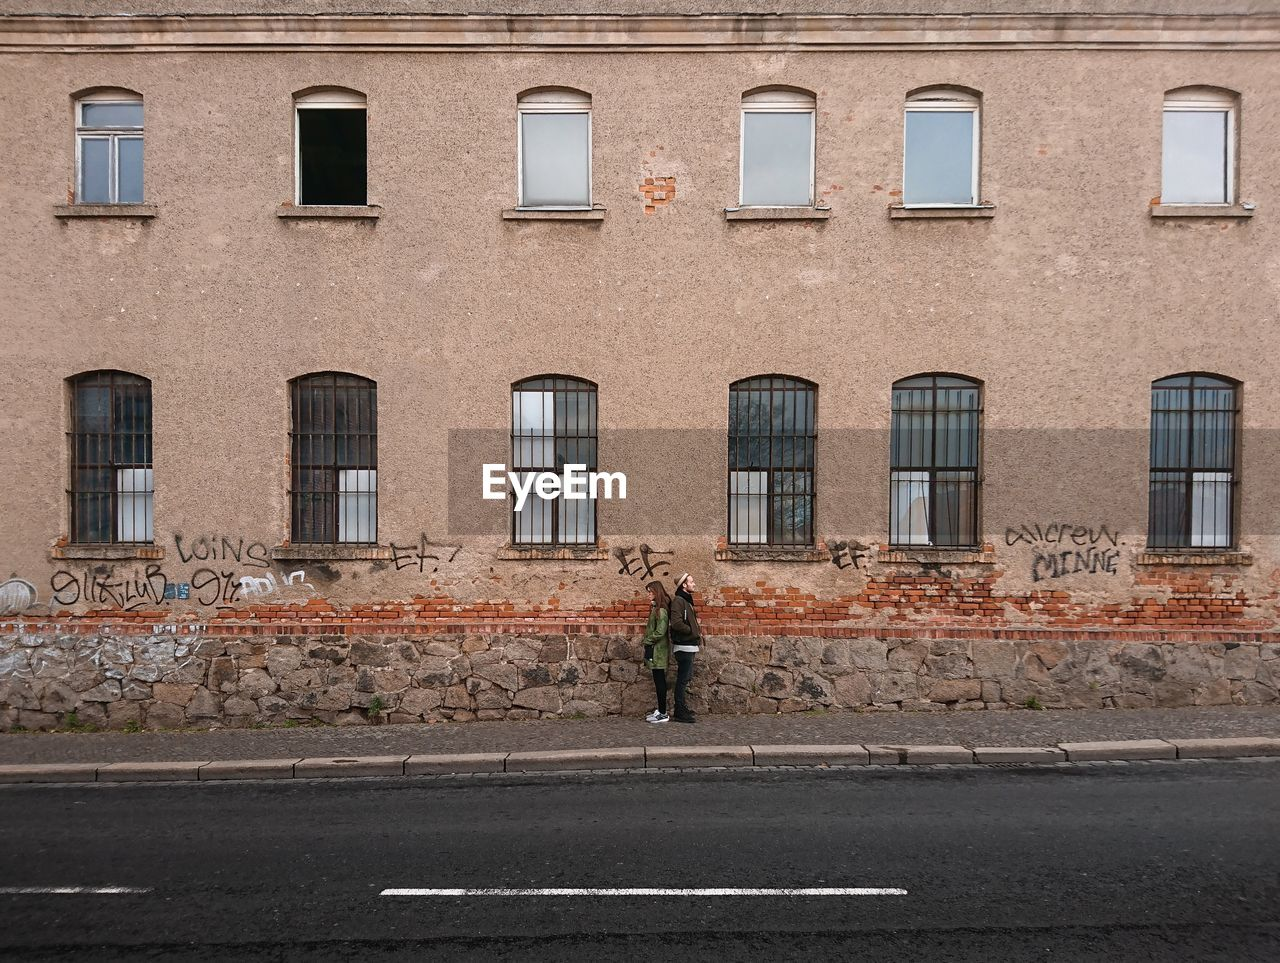 window, building exterior, street, architecture, road, day, outdoors, city, men, full length, people, one man only, adult, one person, only men, adults only